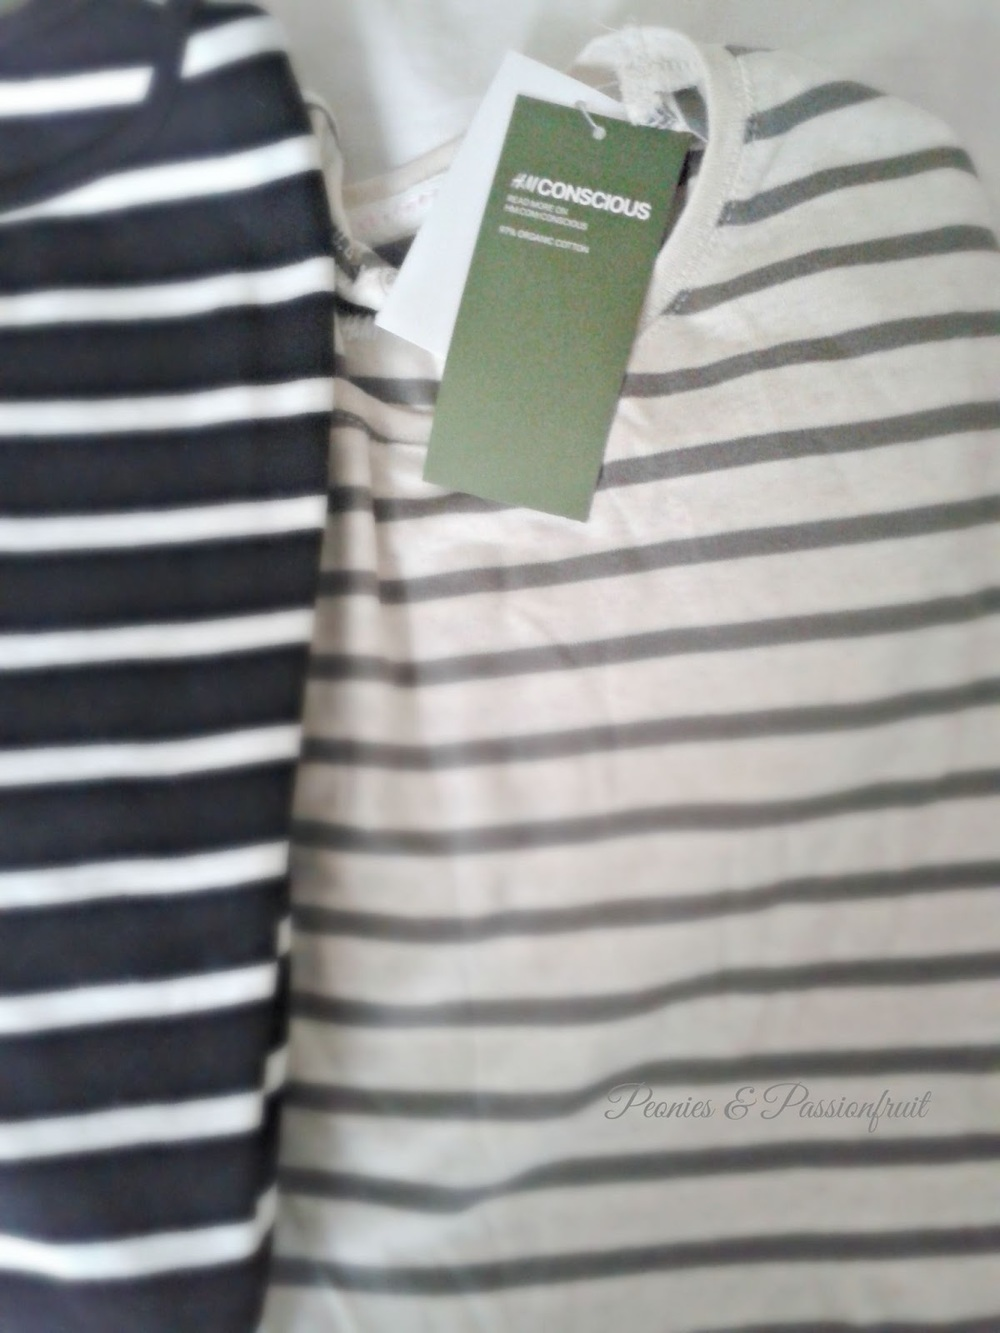 H & M conscious collection organic cotton